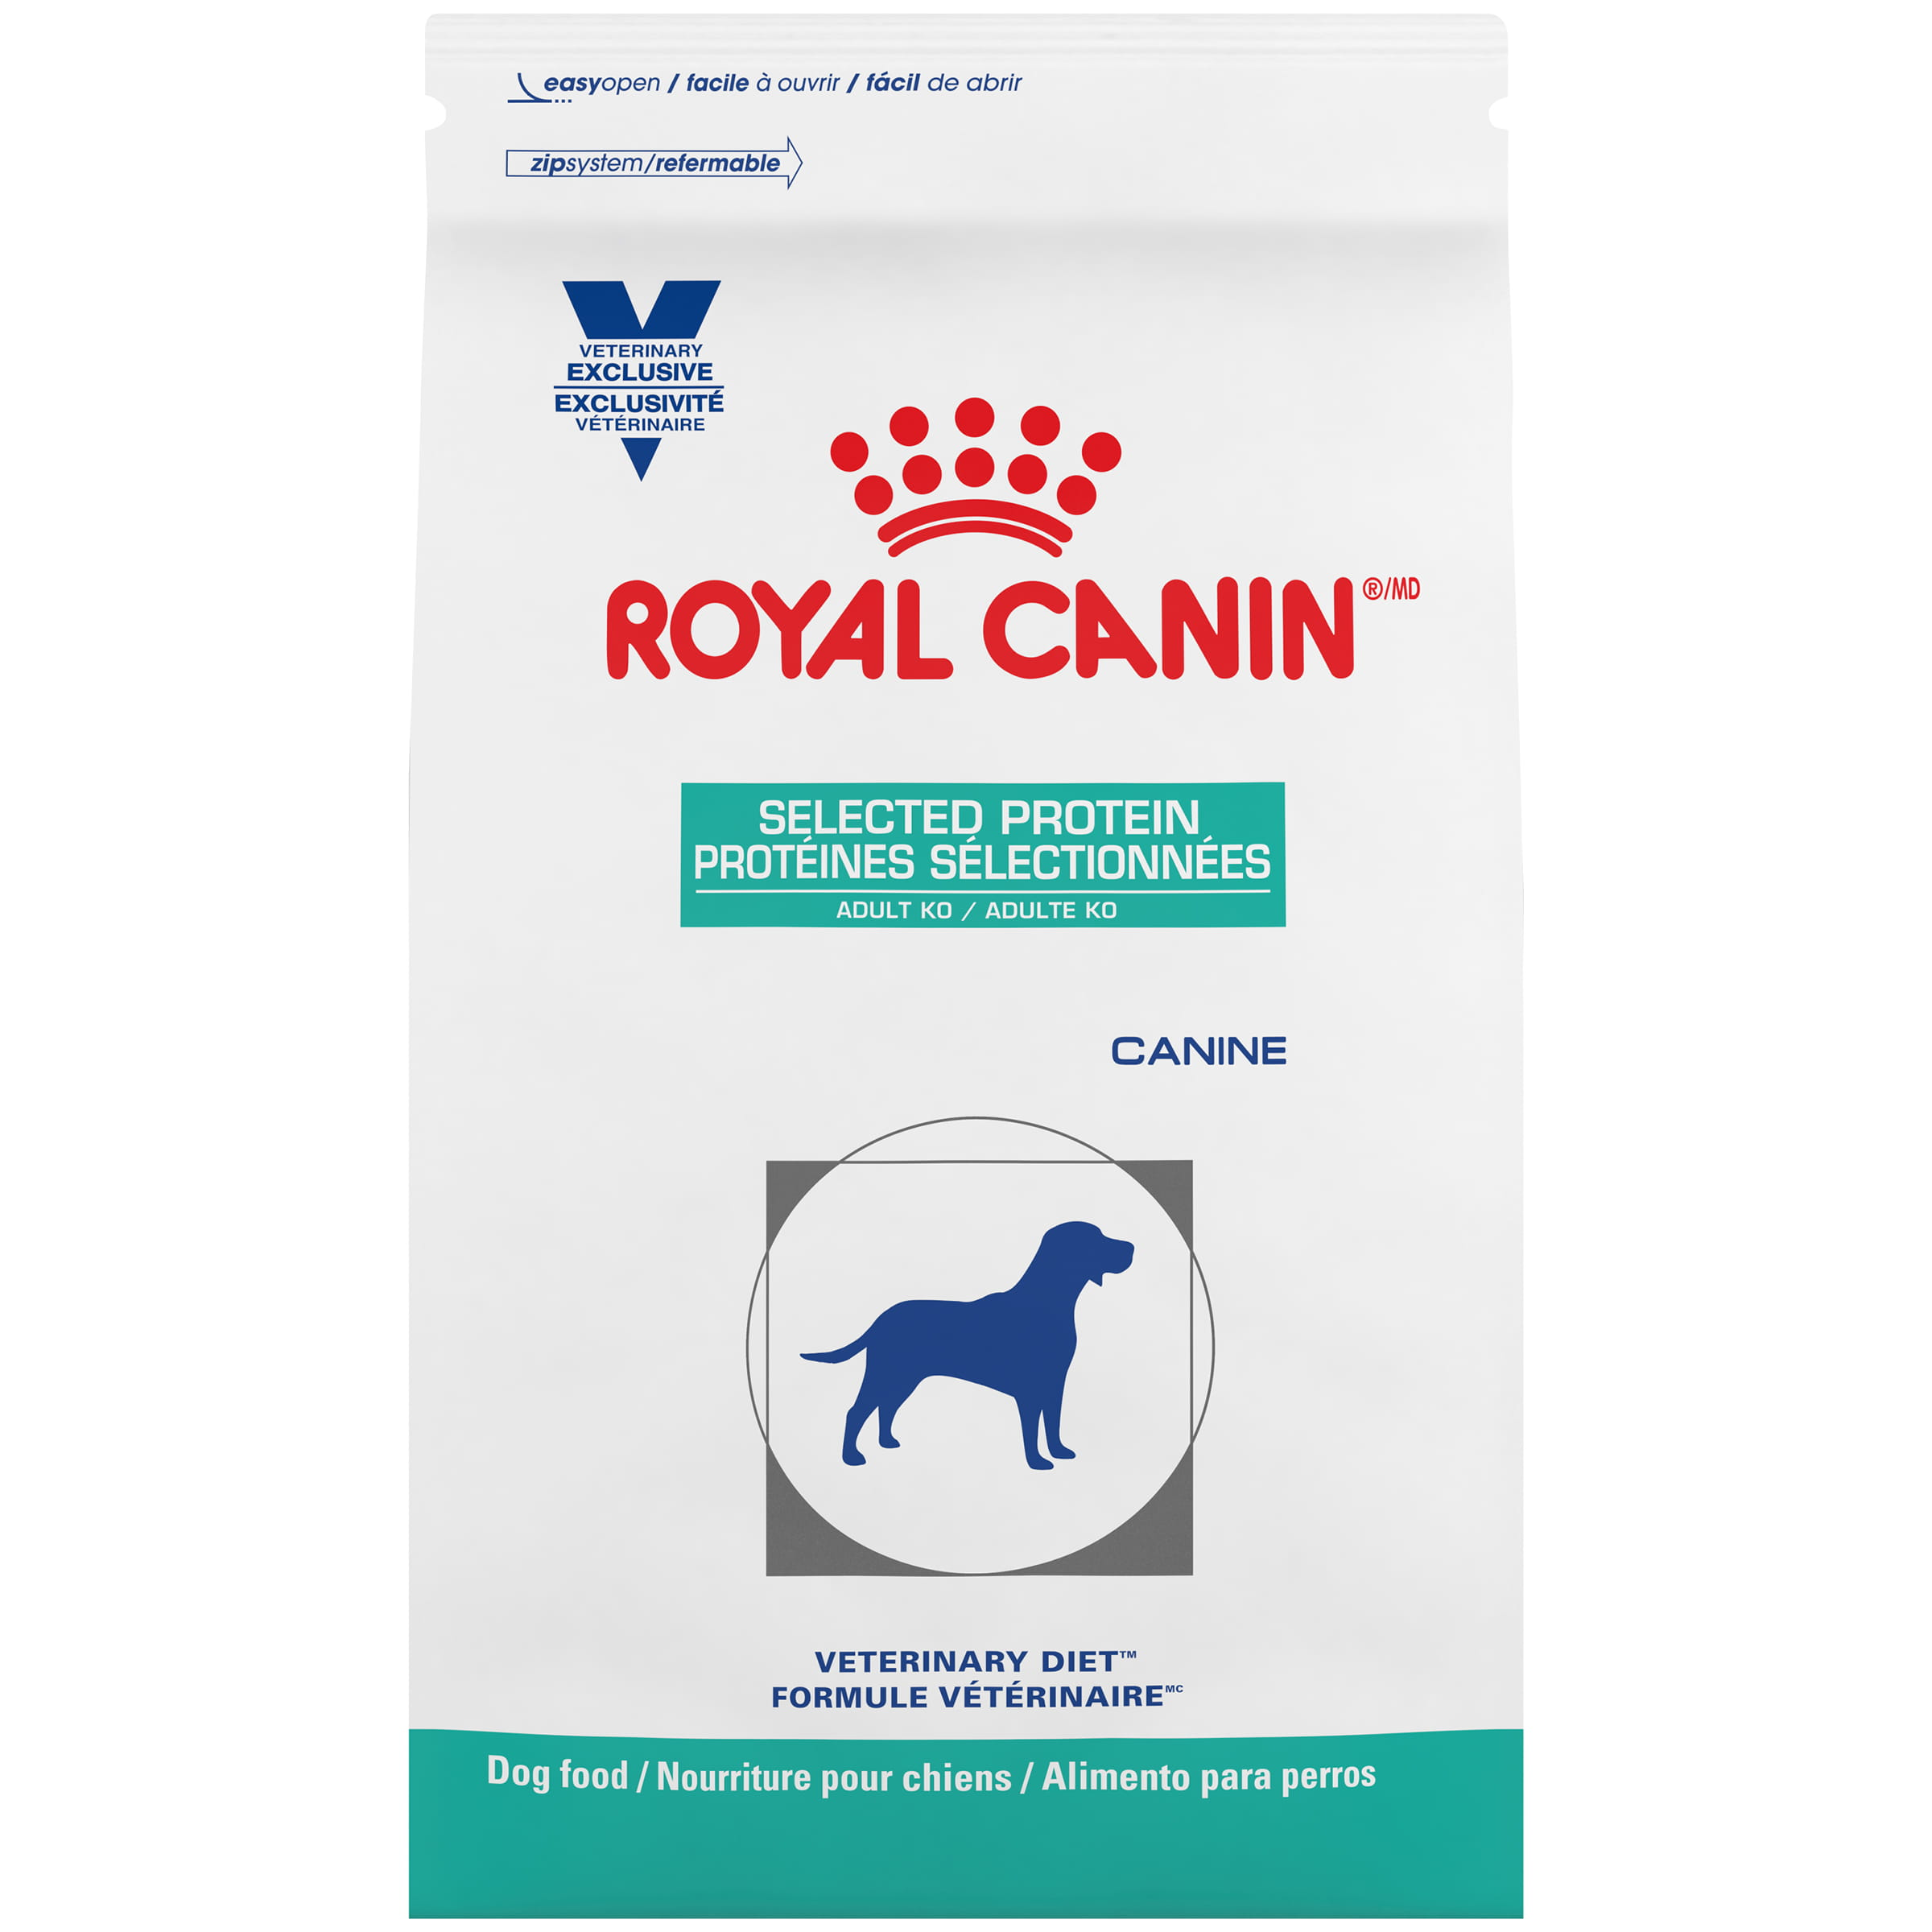 Royal Canin Veterinary Diet Canine Selected Protein Adult Ko Dry Dog Food